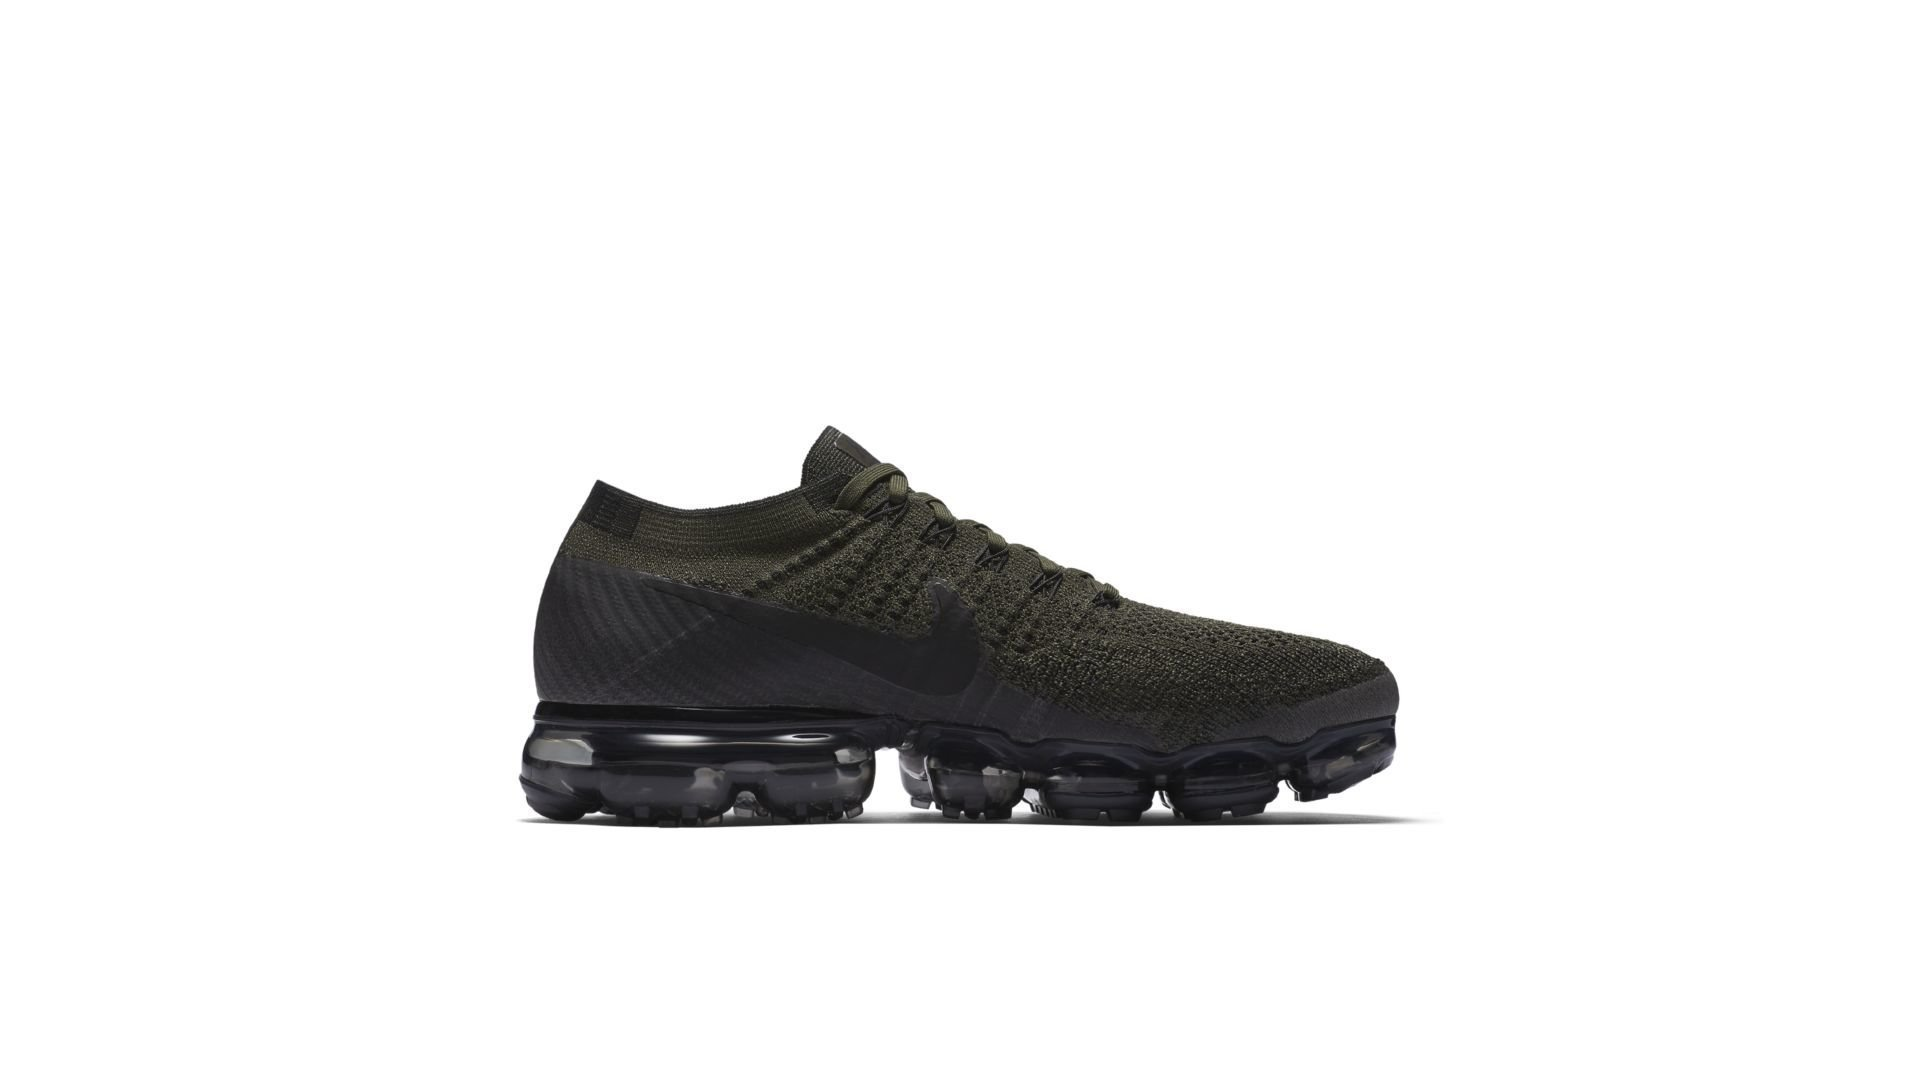 Nike Air VaporMax Flyknit Olive (849558-300)